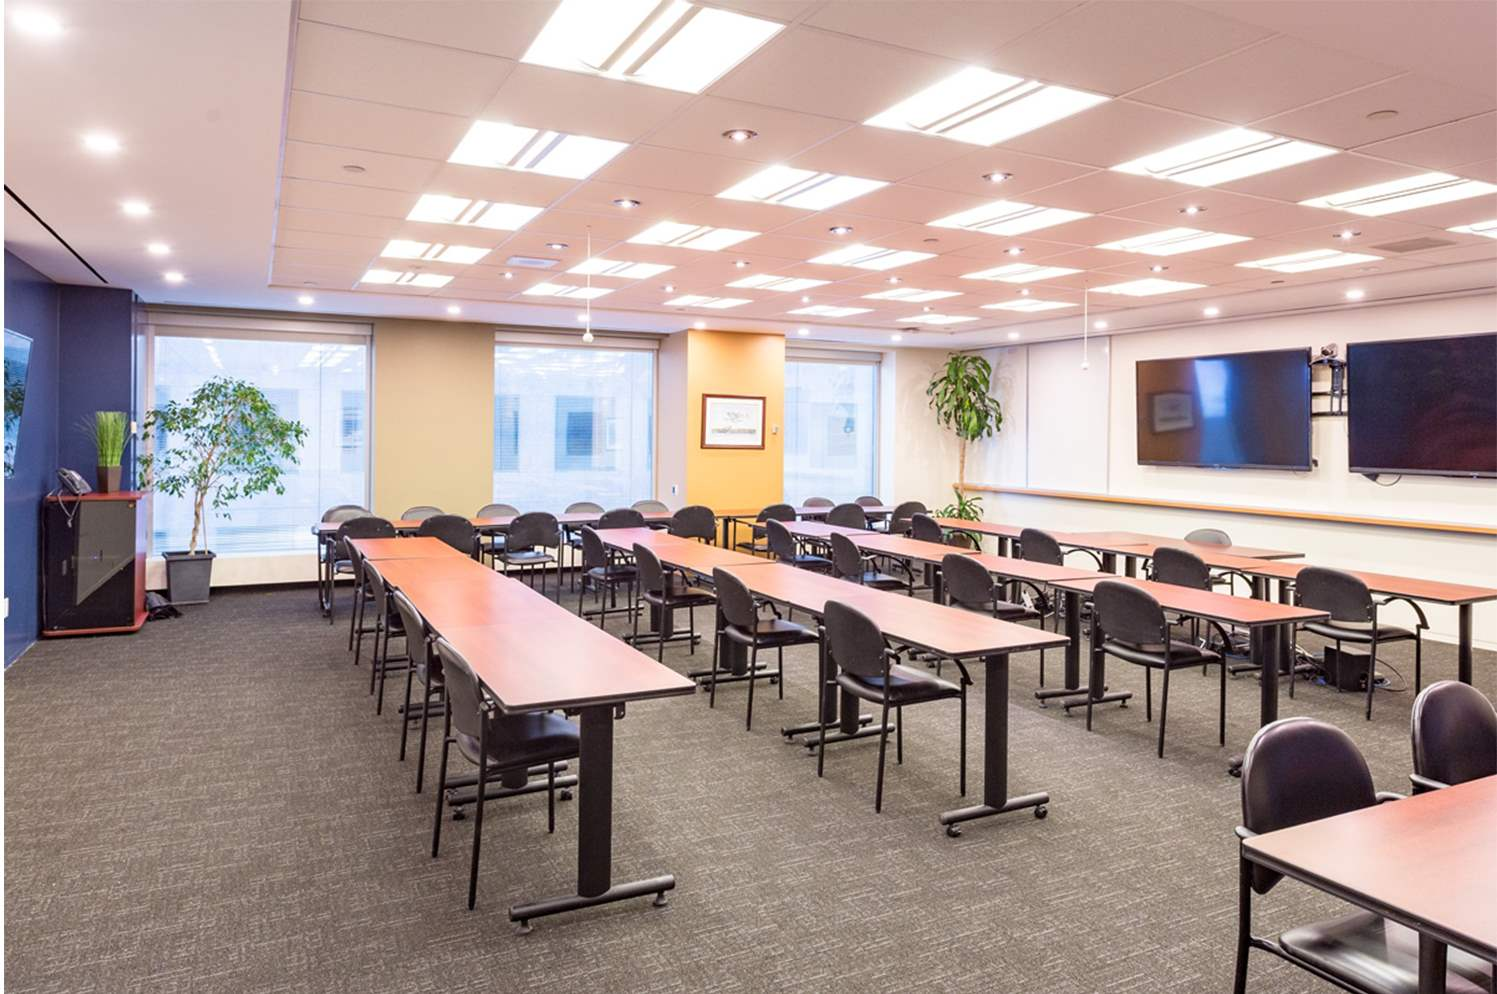 Rainy Lake Meeting Room Classroom layout